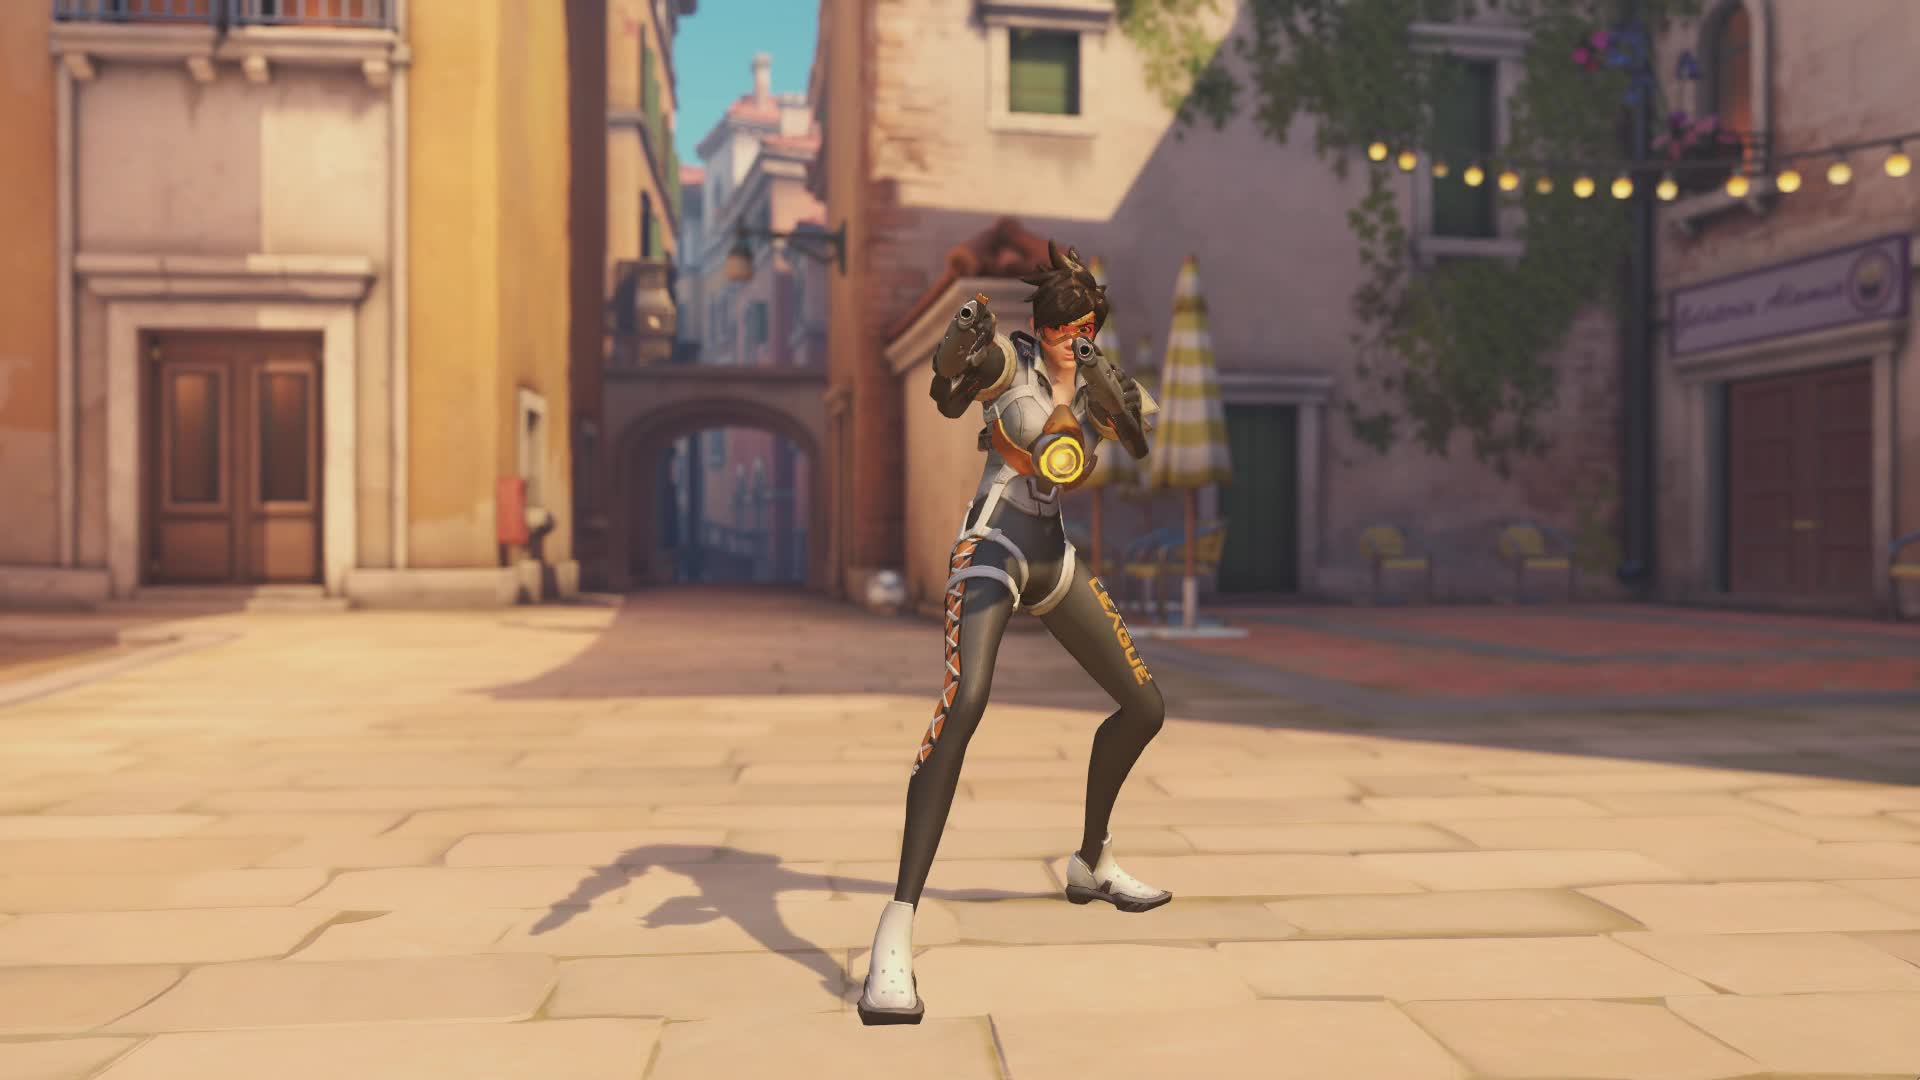 60fps, emote, finger guns, loop, overwatch, tracer, Finger guns GIFs